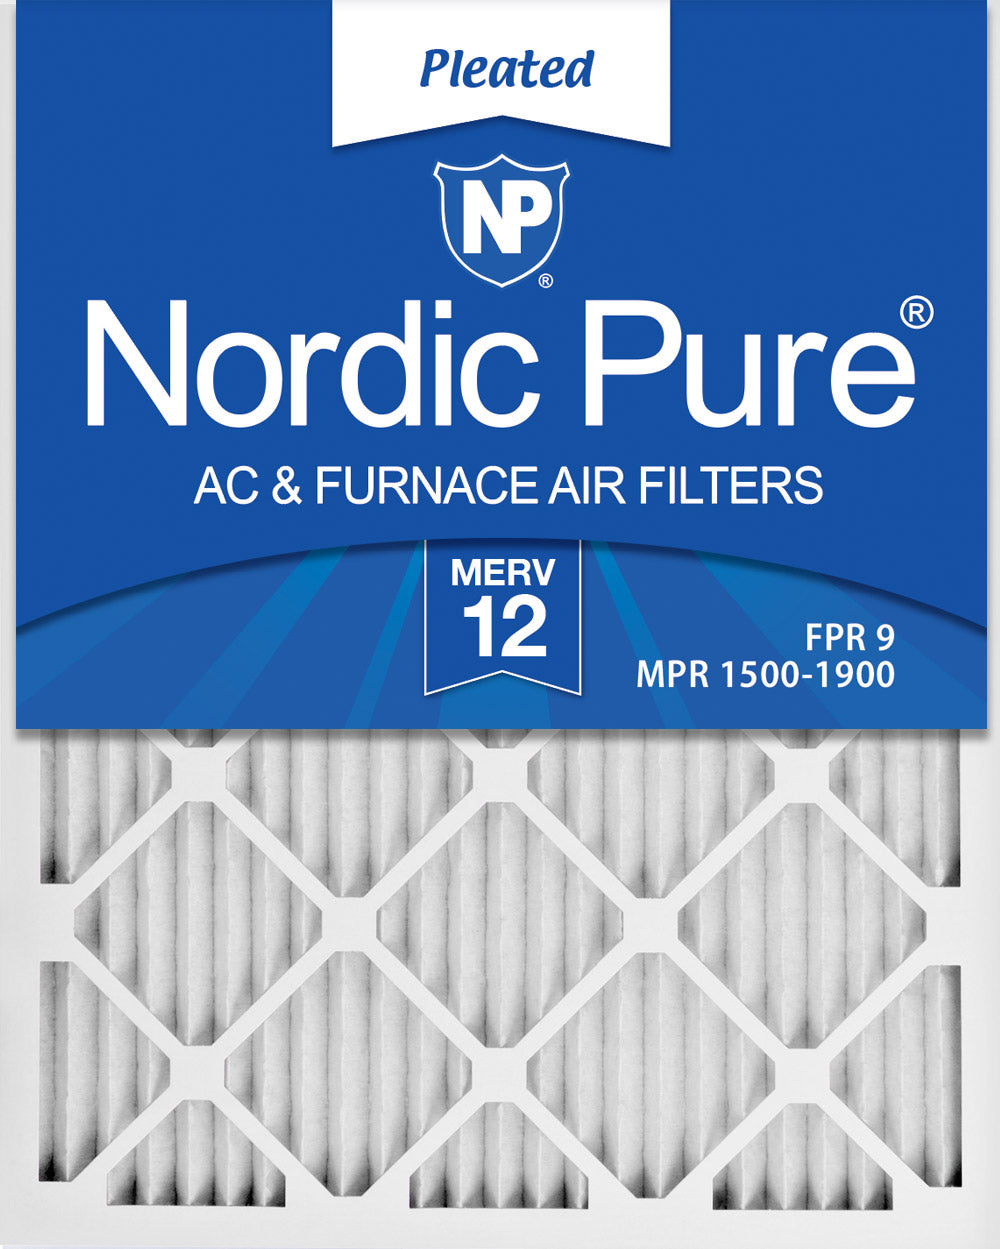 20x25x1 Pleated MERV 12 Air Filters 3 Pack